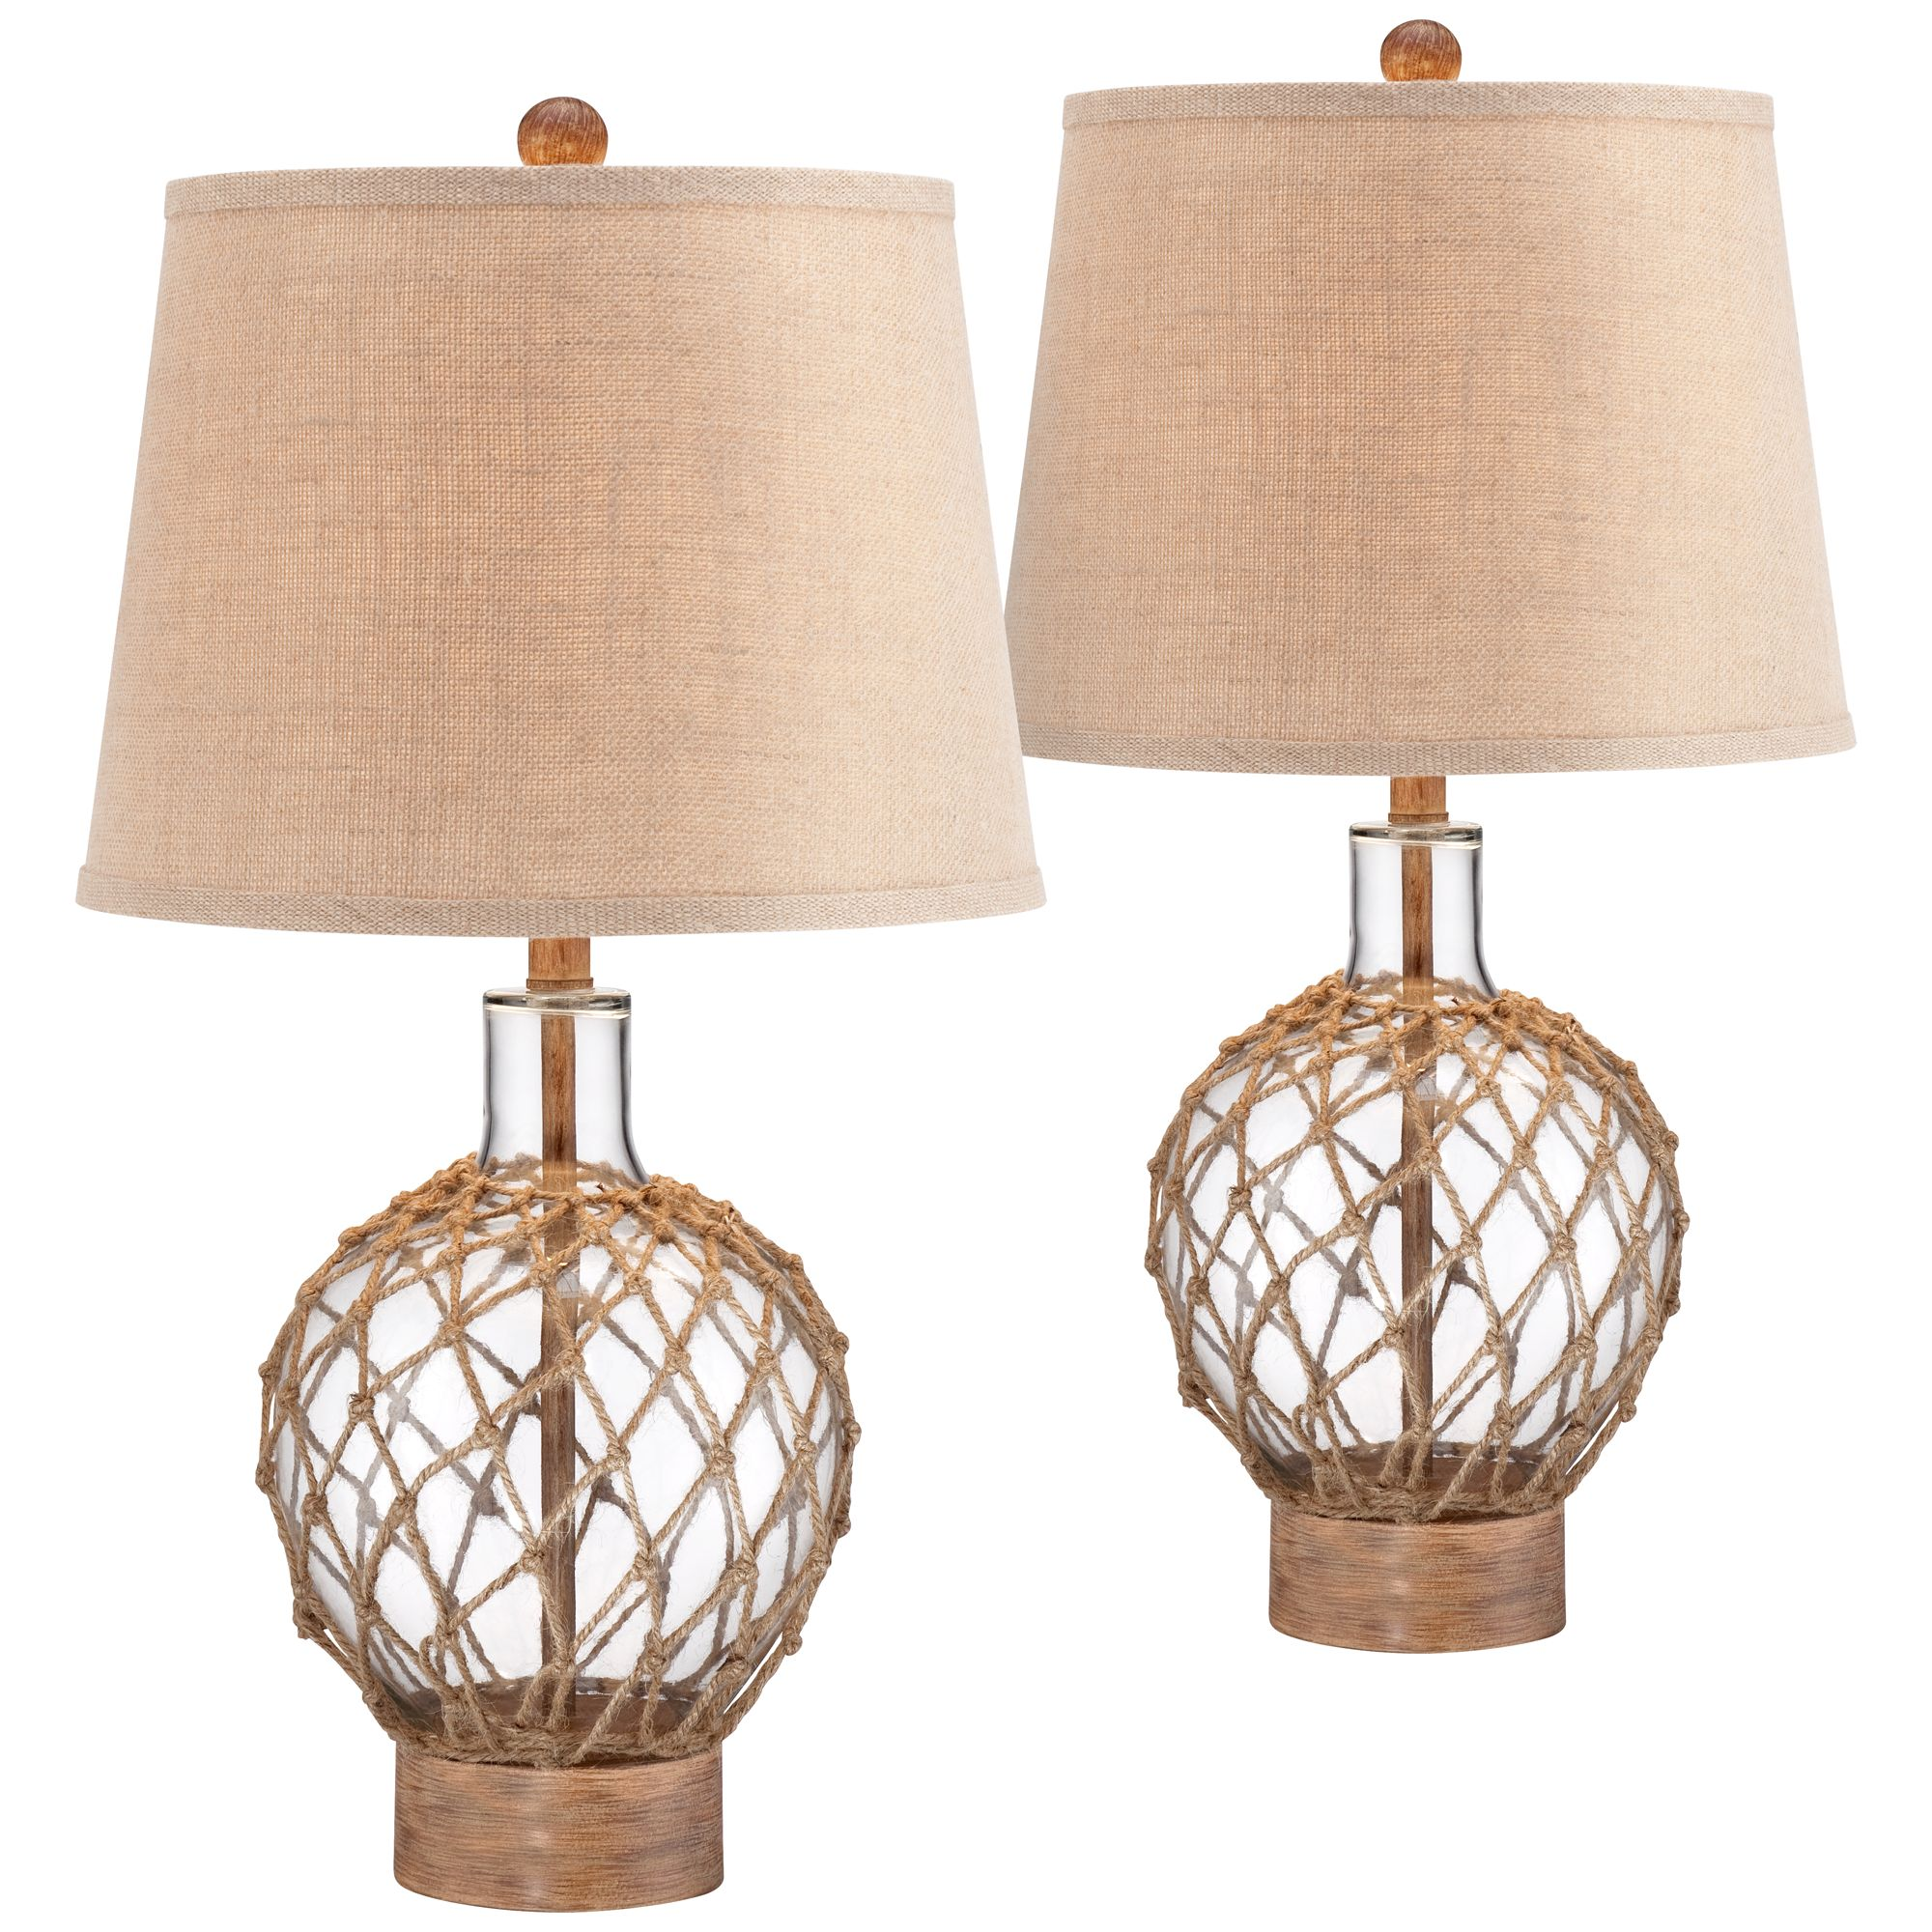 Coastal Lamps 360 Lighting Coastal Table Lamps Set Of 2 Rope And Clear Glass Jug Burlap Drum Shade For Living Room Family Bedroom Nightstand